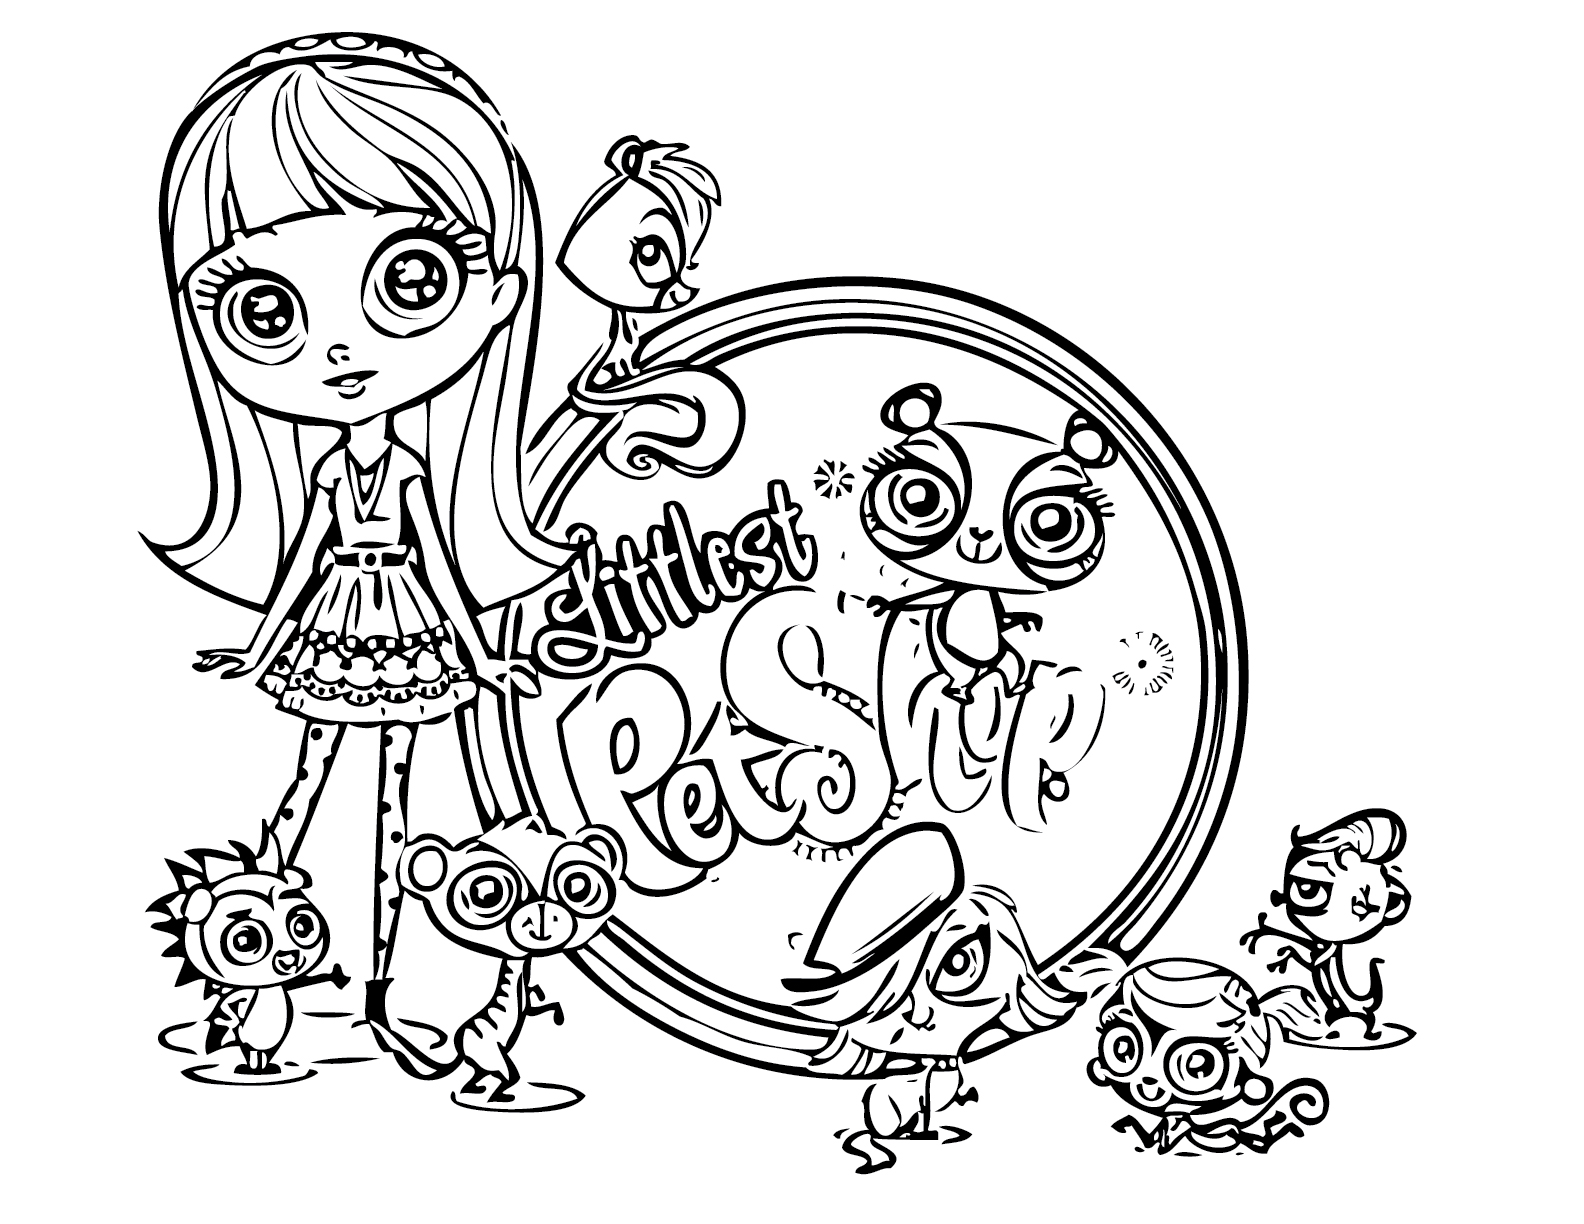 Lps Christmas Coloring Pages With Littlest Pet Shop Best For Kids